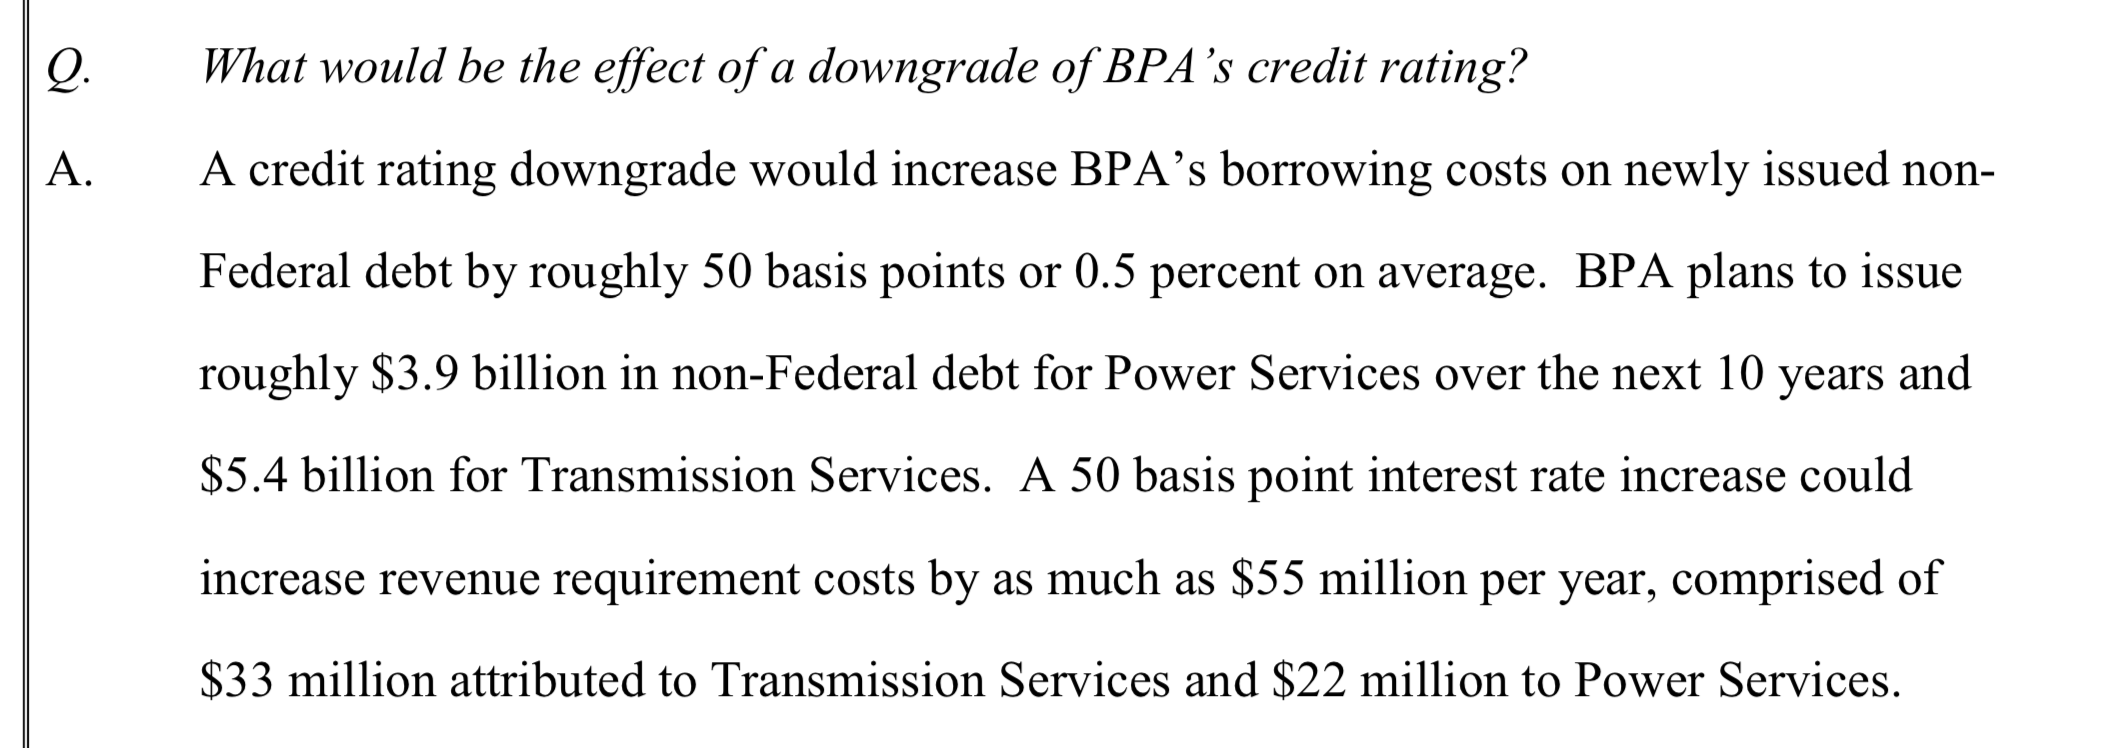 Credit_downgrade_borrowing_cost